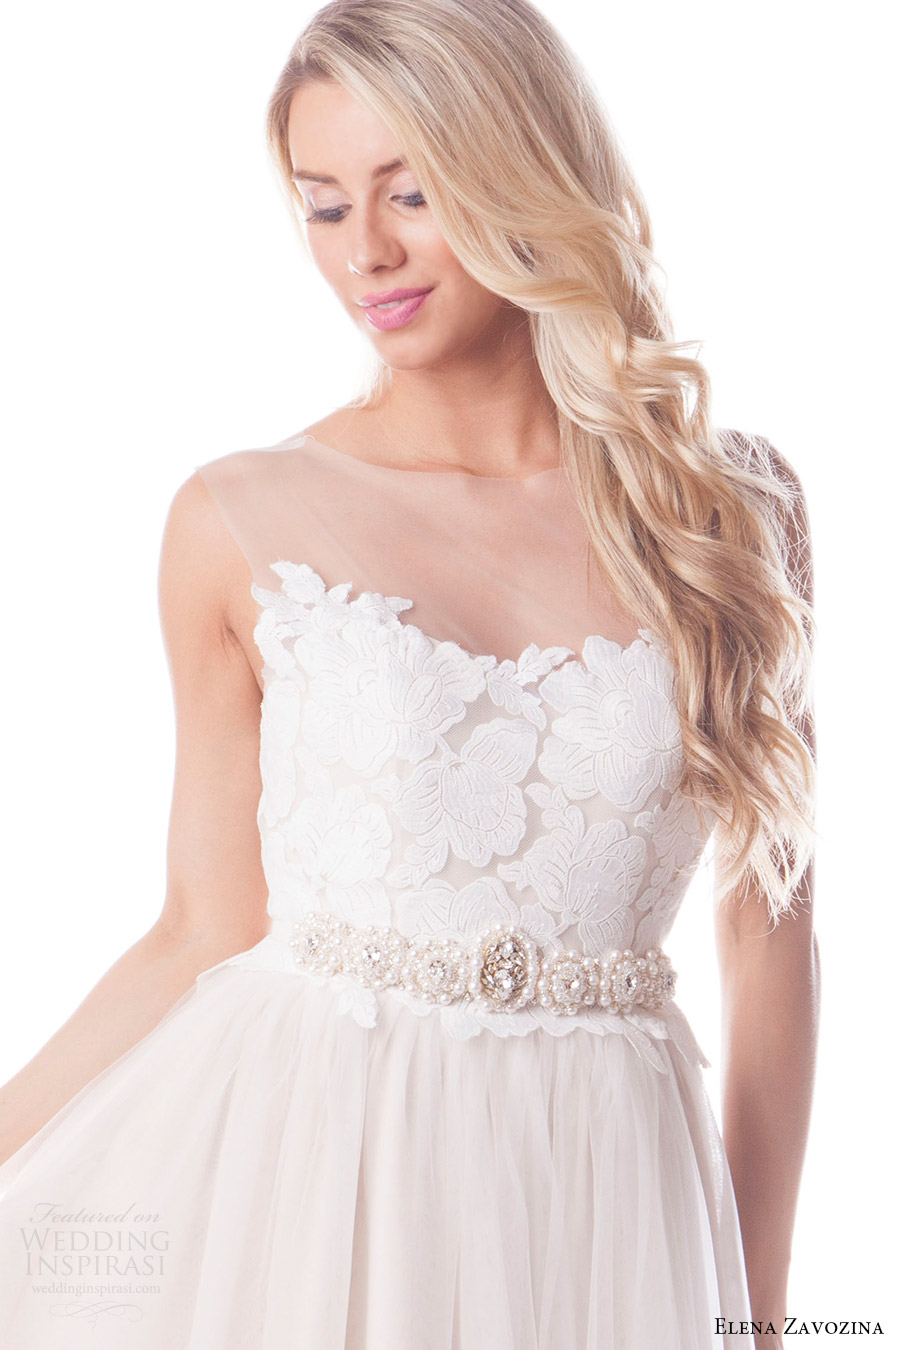 elena zavozina bridal accessories 2016 wedding pearl belt (elena) fv